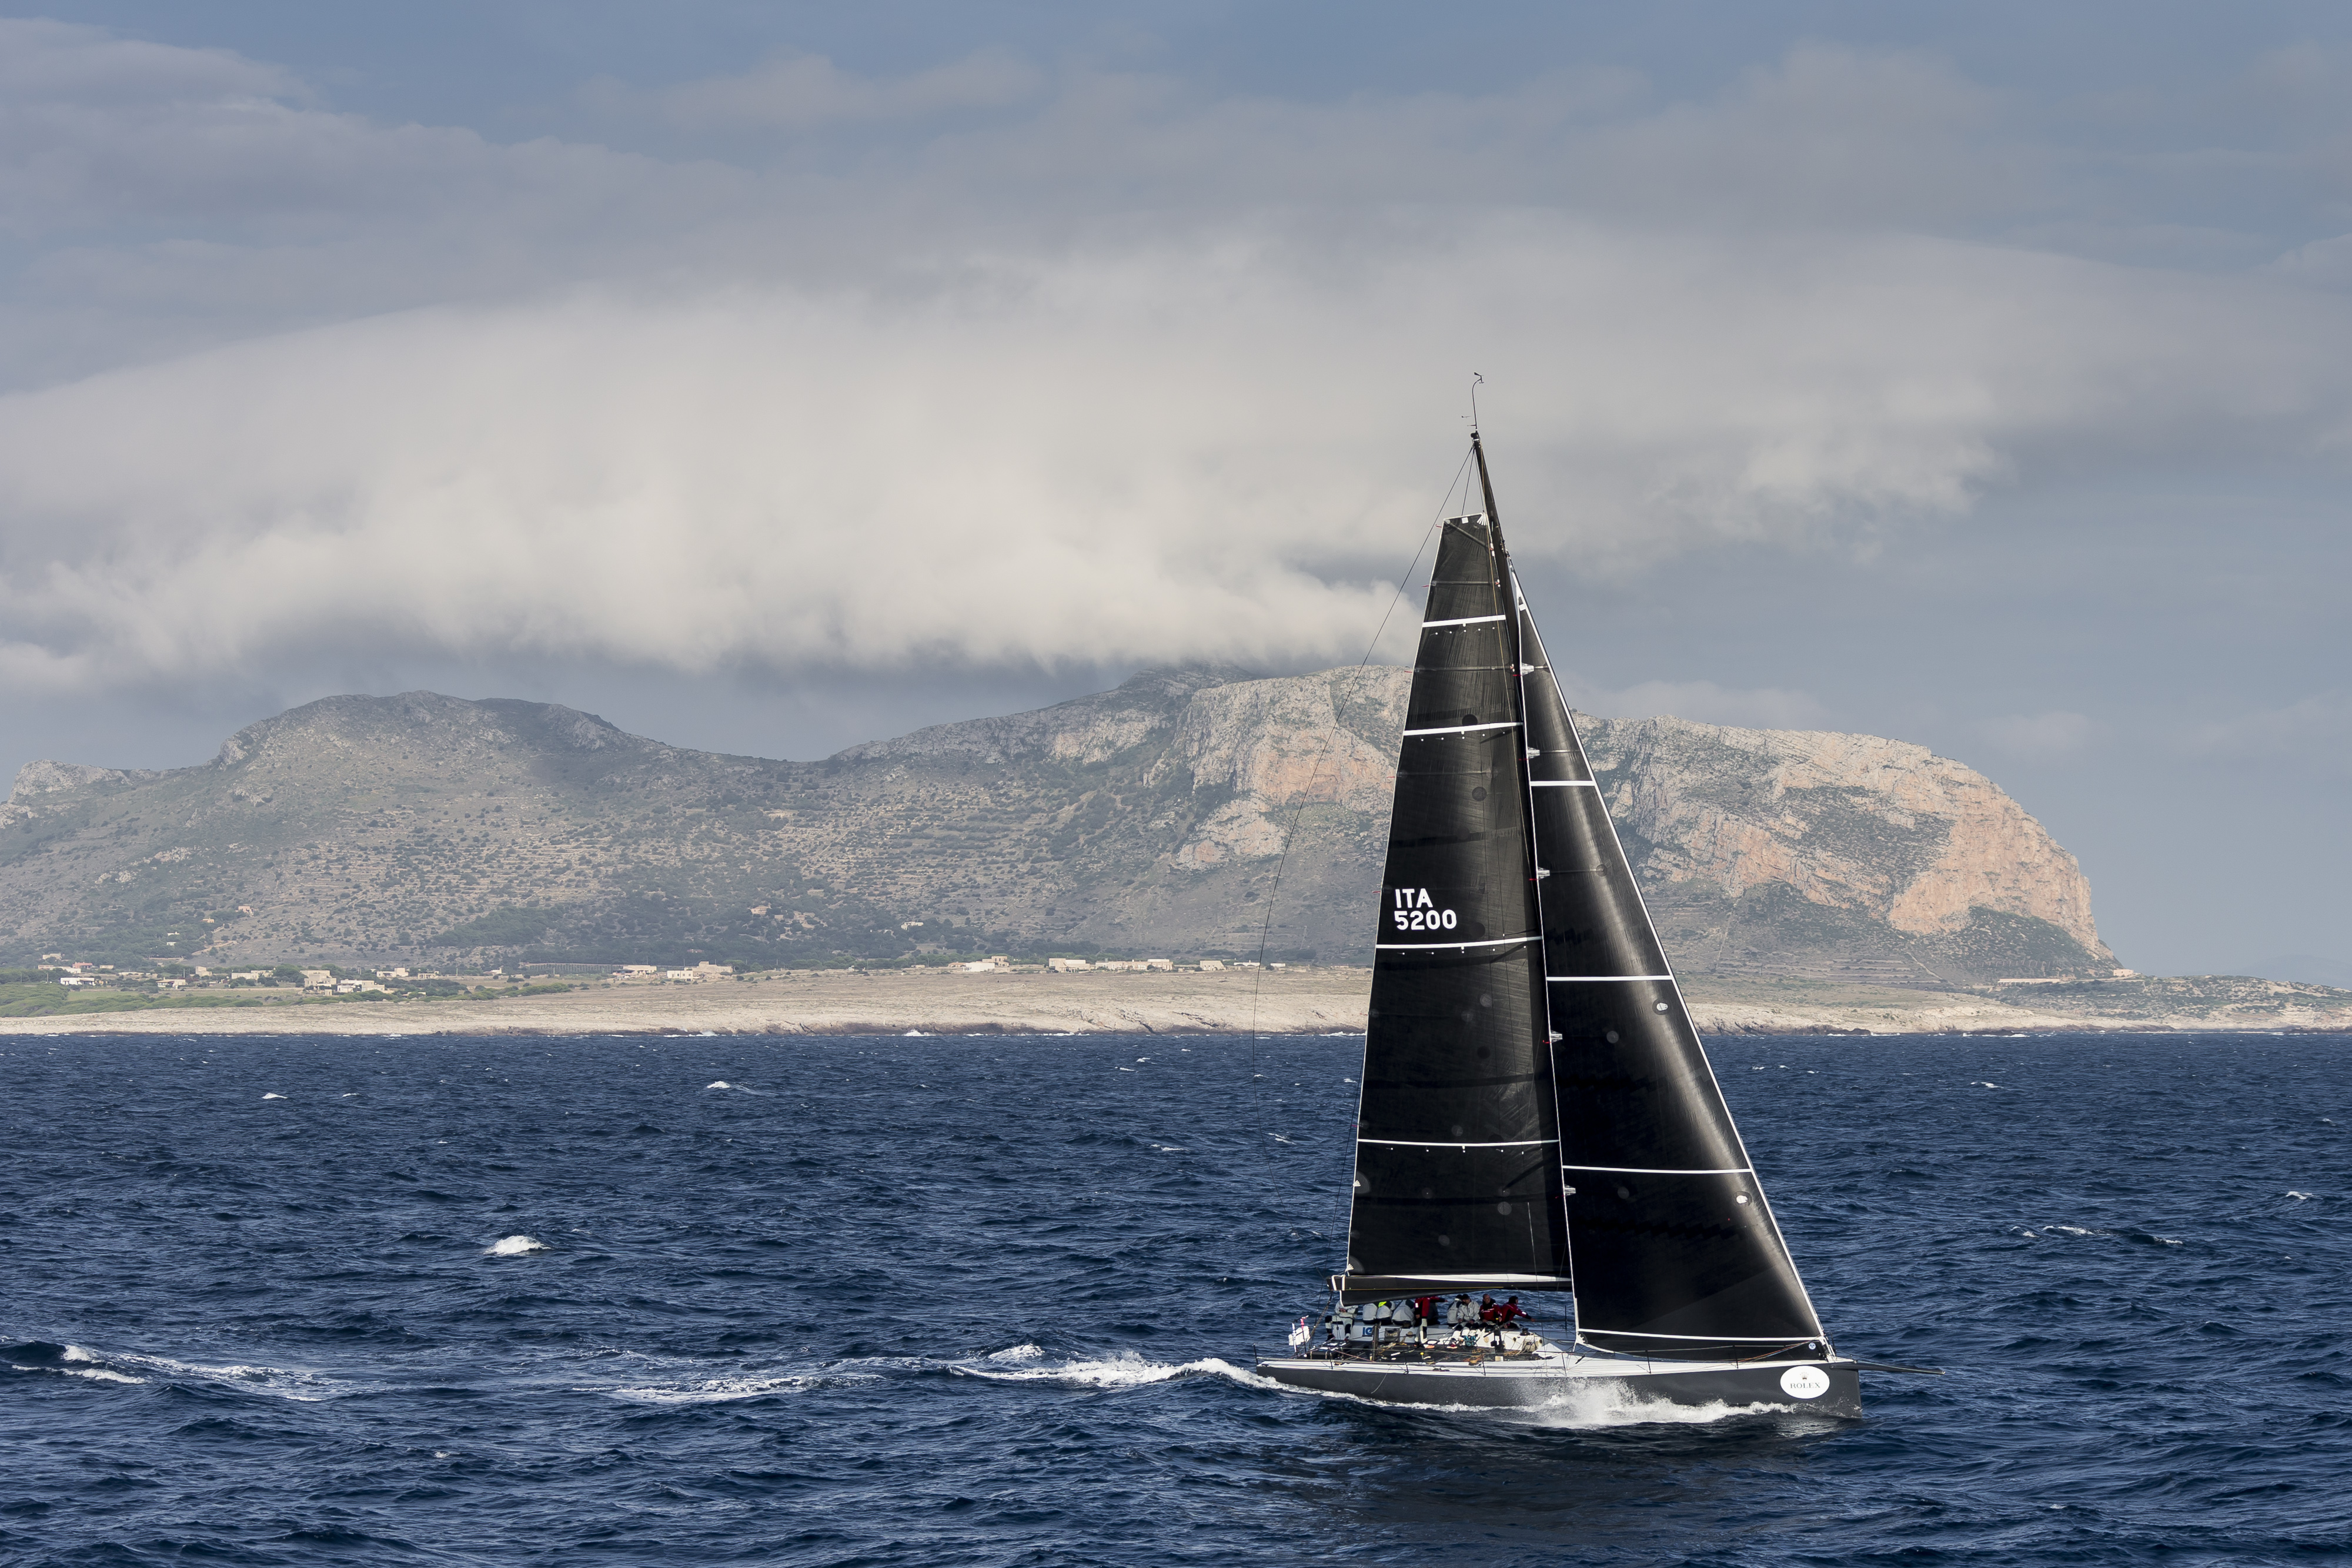 B2, Sail n: ITA5200, Boat Type: IRC 52, Skipper: Michele Galli, Country: Italy